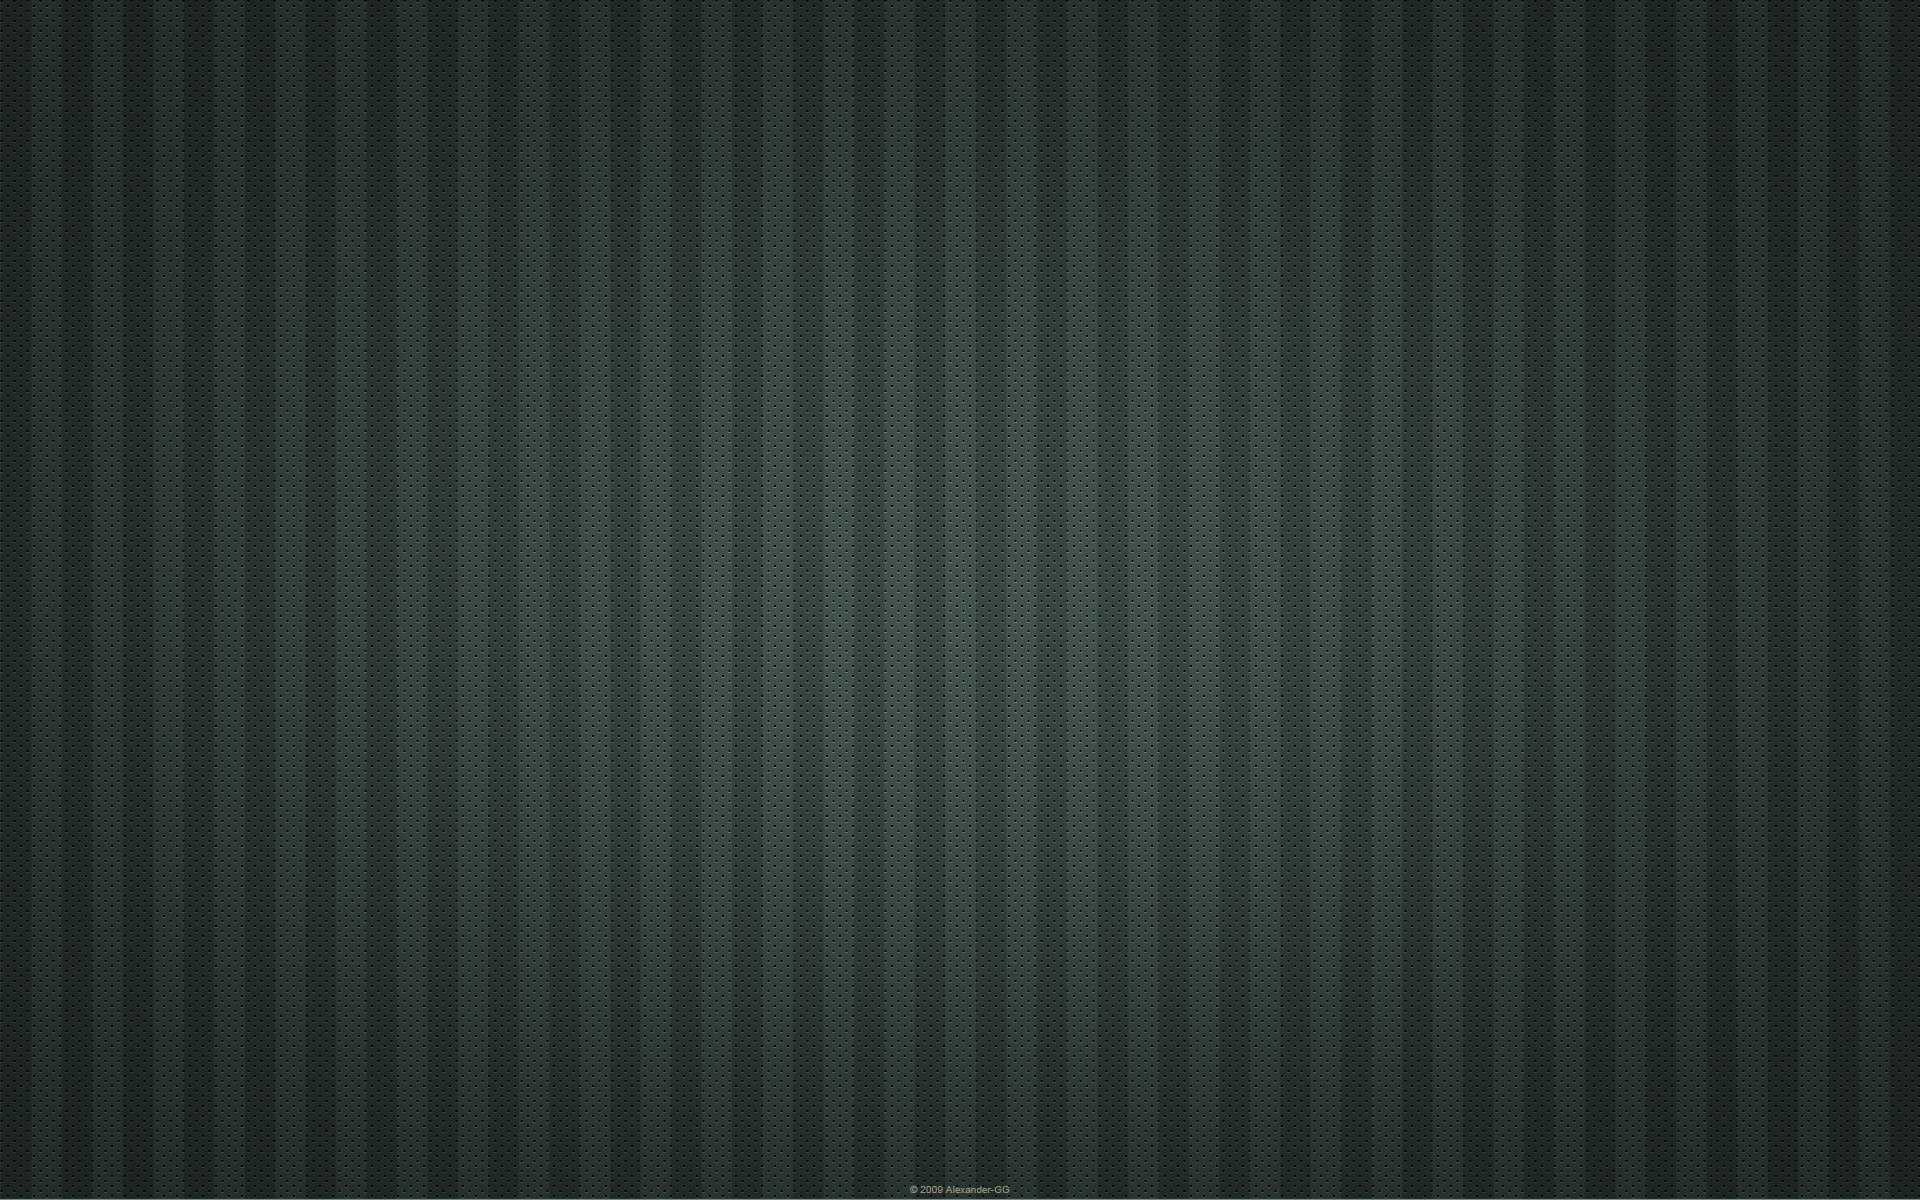 vertical lines, floor, texture, lines texture, backgrounds, background for website